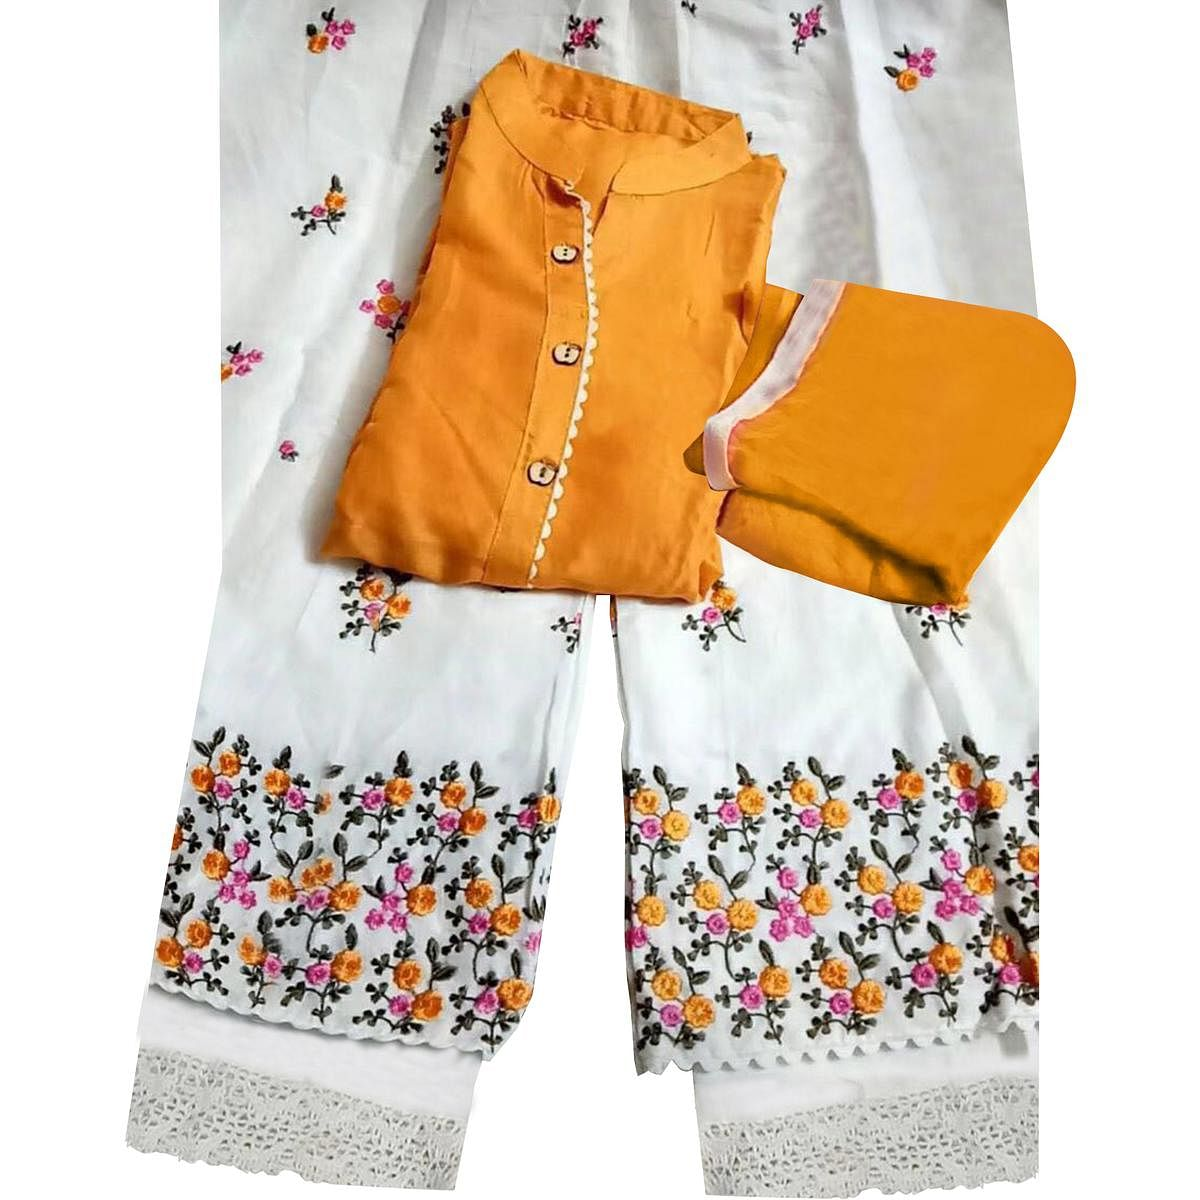 Appealing Yellow Colored Partywear Embroidered Rayon Palazzo Suit